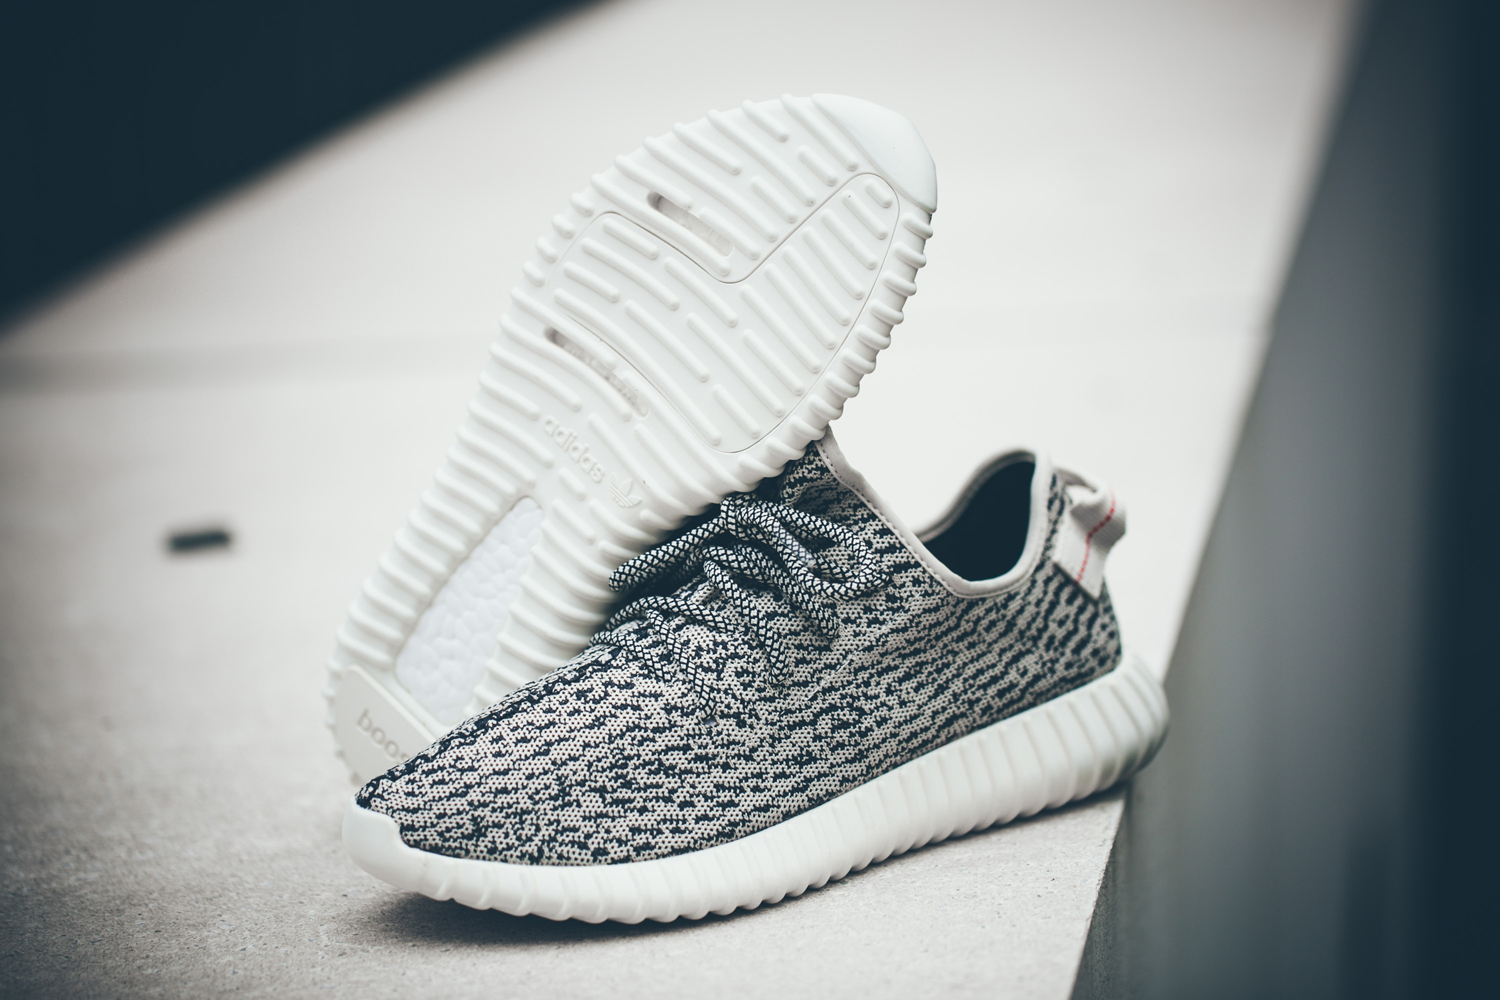 Adidas Yeezy Boost 350 Turtle Dove AQ 4832 US 11. .in